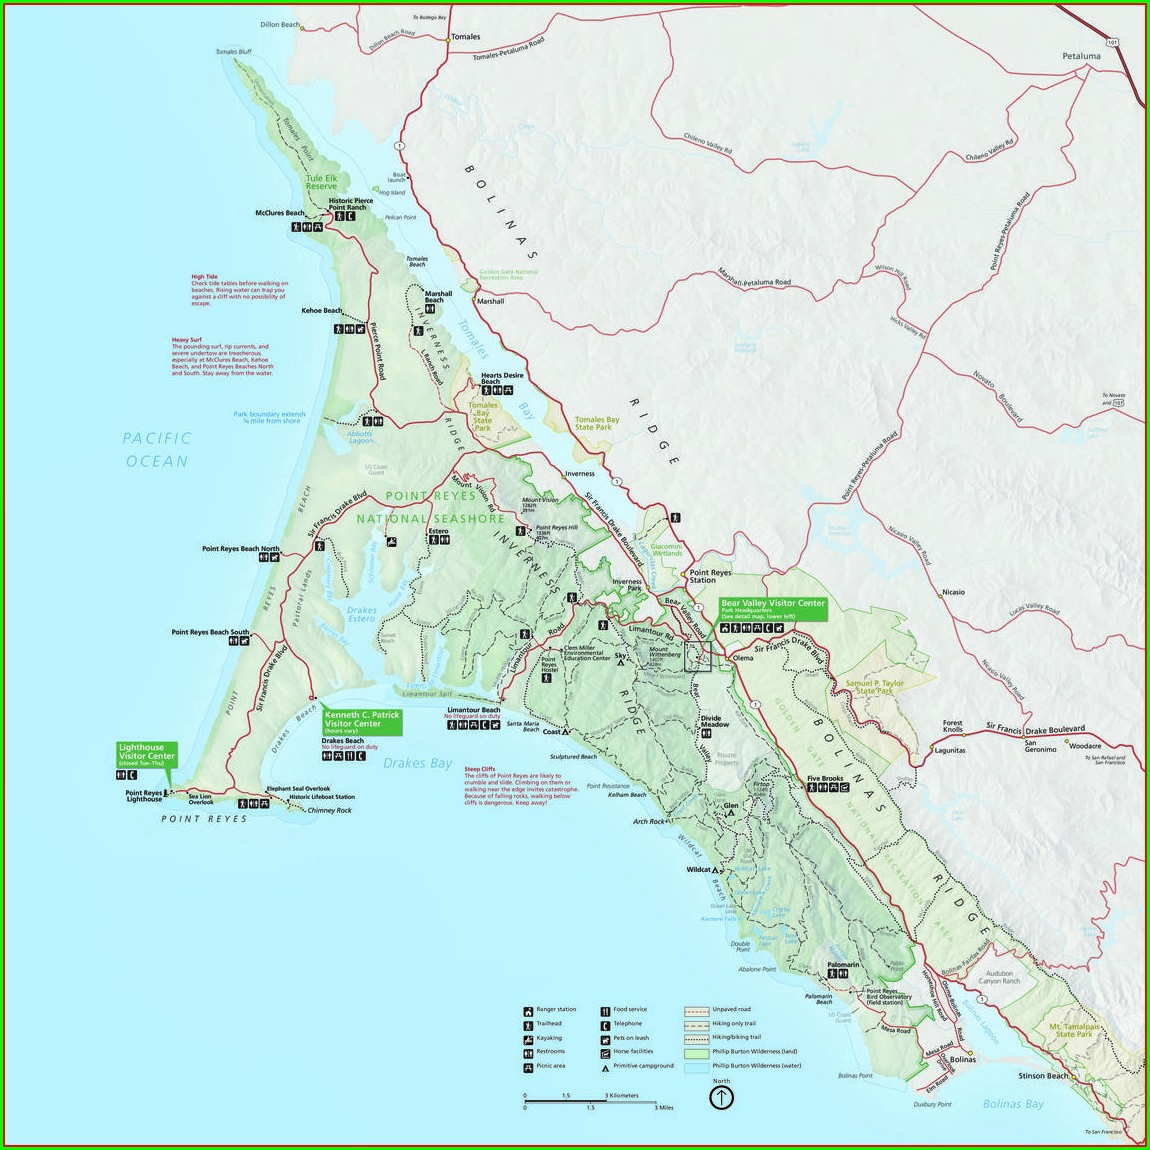 Point Reyes National Seashore Map